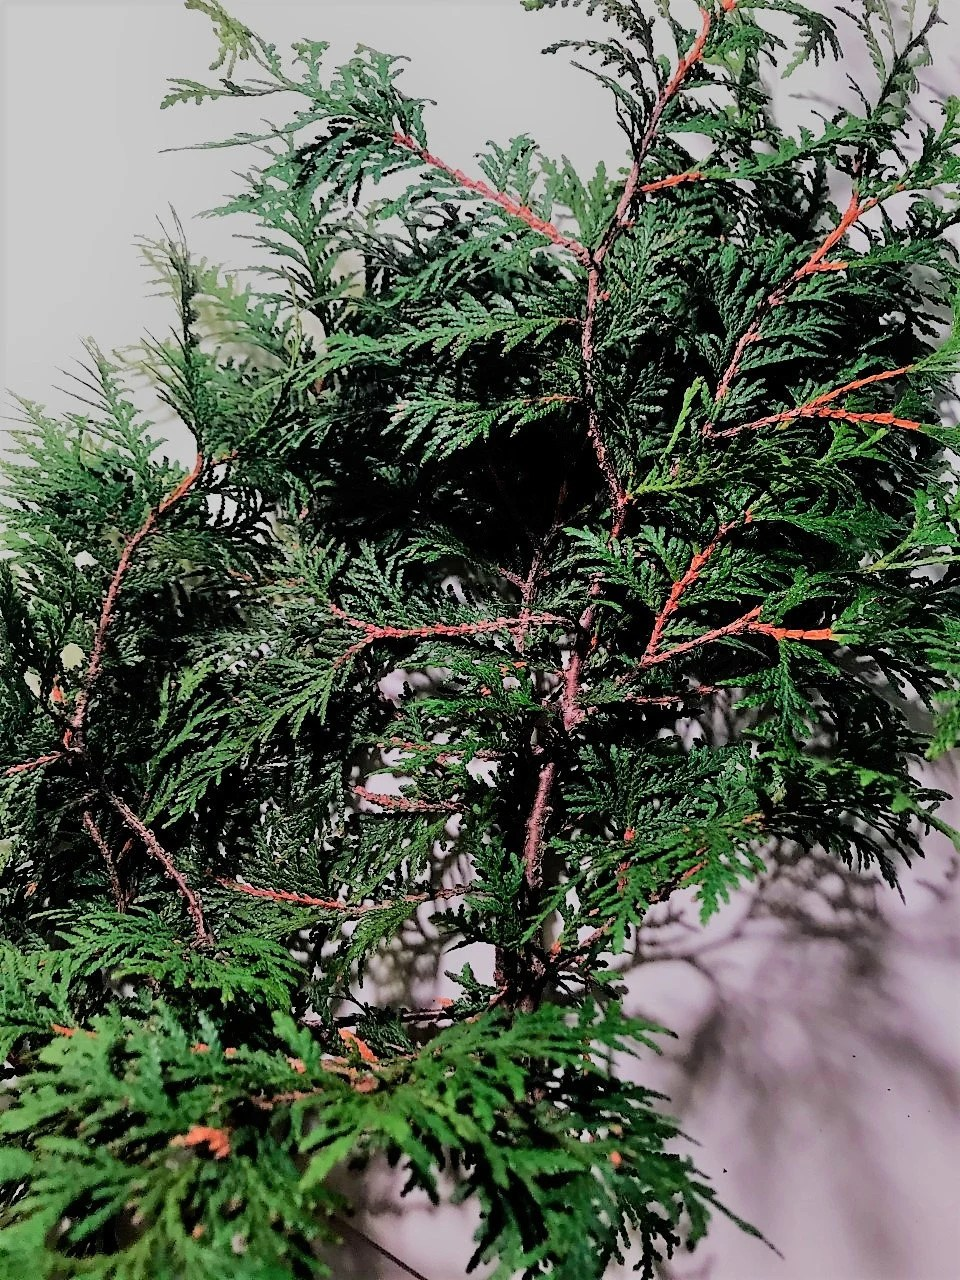 Thuja Y Cancer New 10 Freshly Cut Organic Thuja Branches For Art And Craft Projects Home Decor Wreath Making